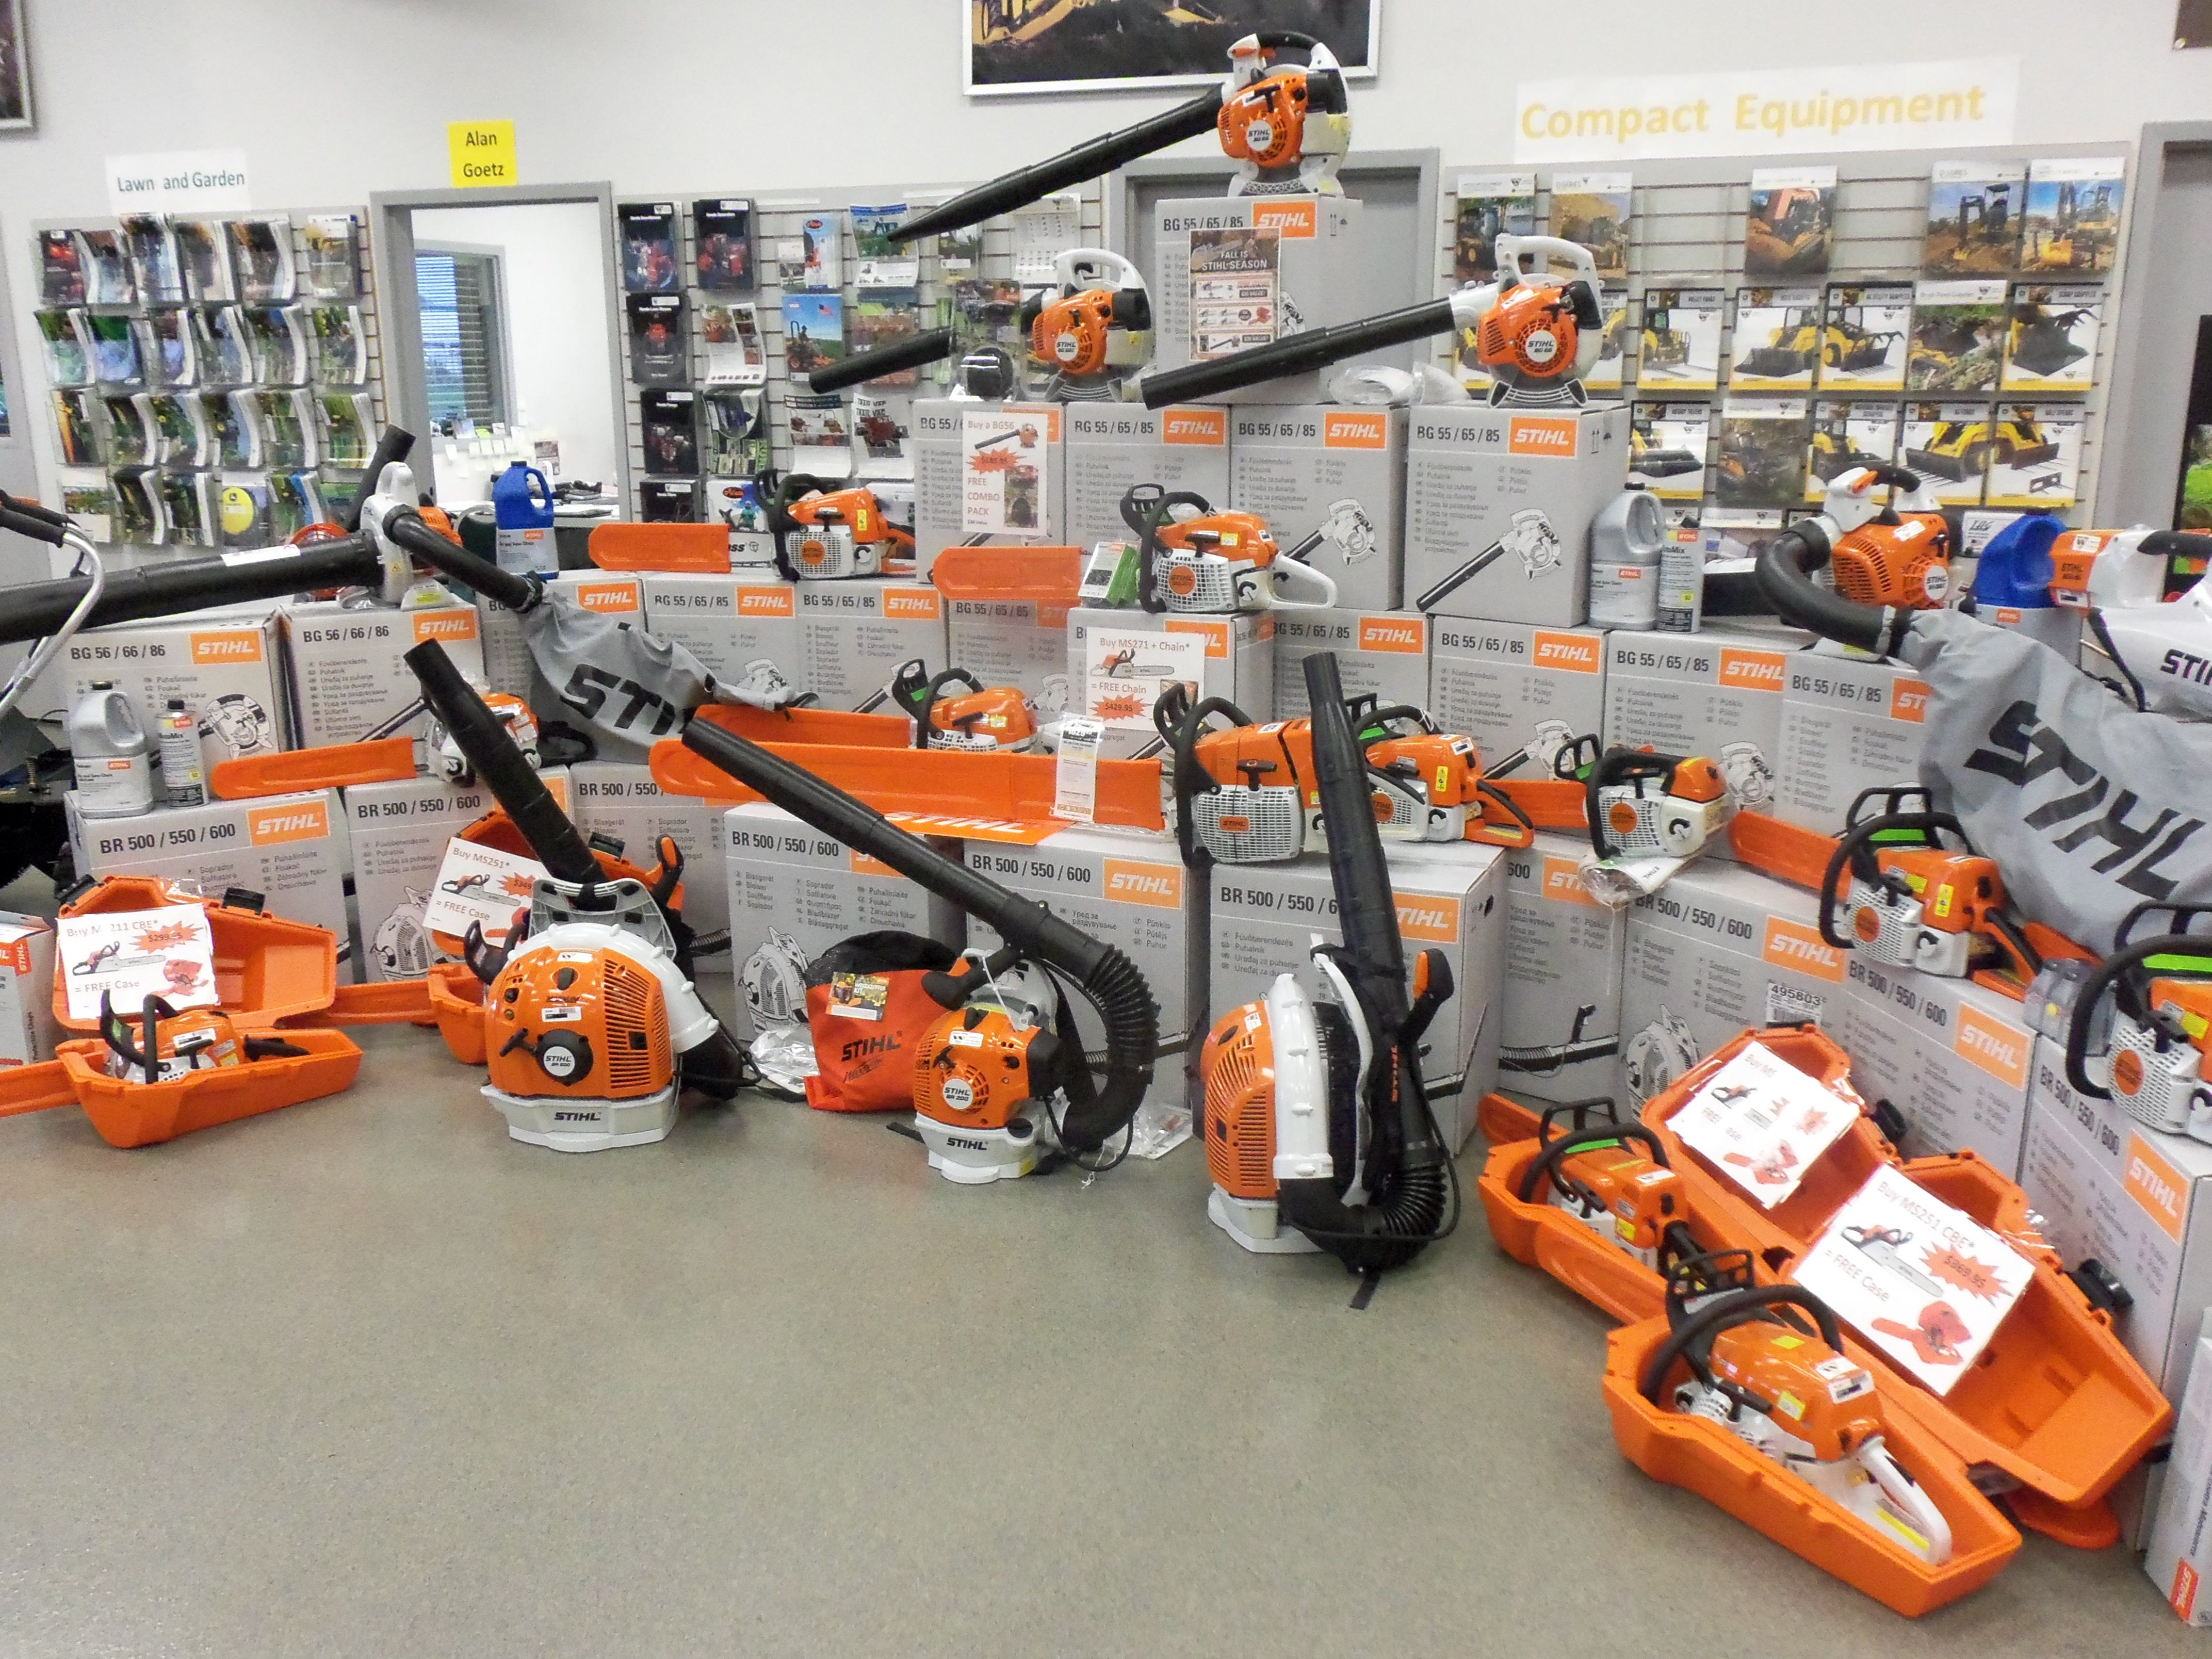 wonderful stihl equipment display at westside tractor things i like display lawn equipment. Black Bedroom Furniture Sets. Home Design Ideas